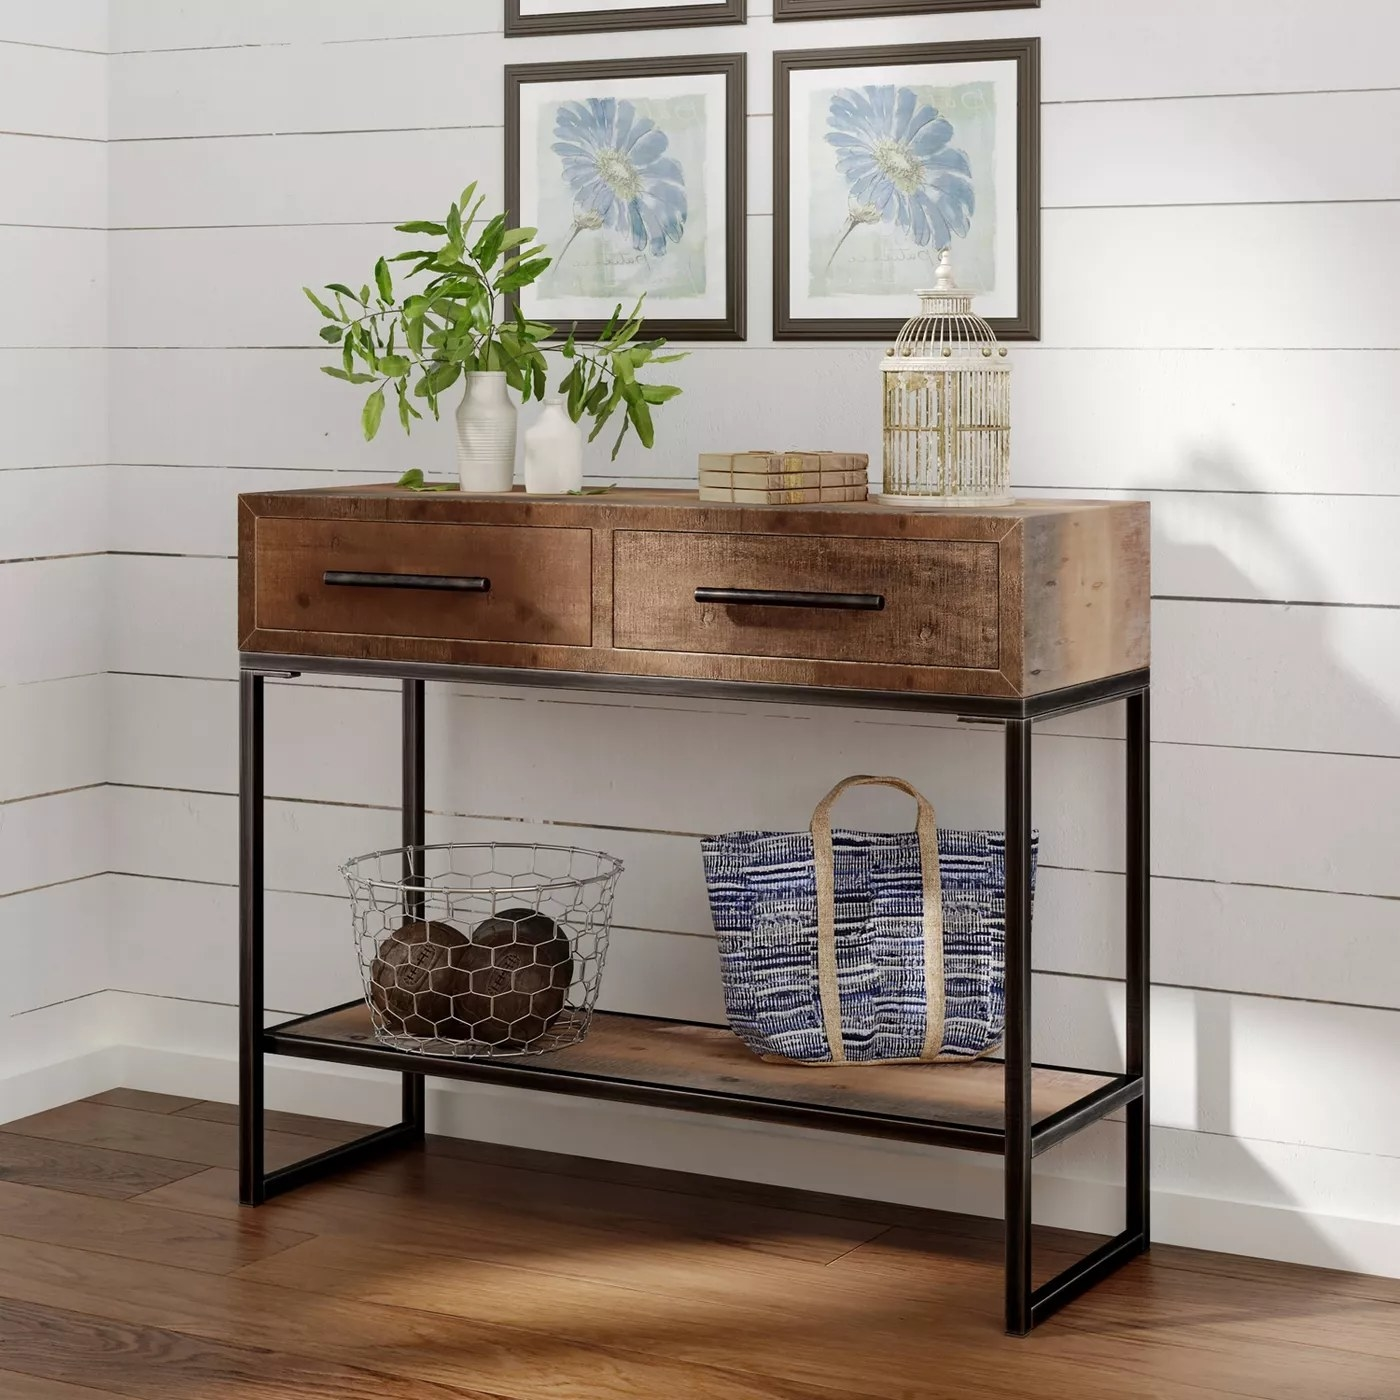 The console with two drawers and a shelf